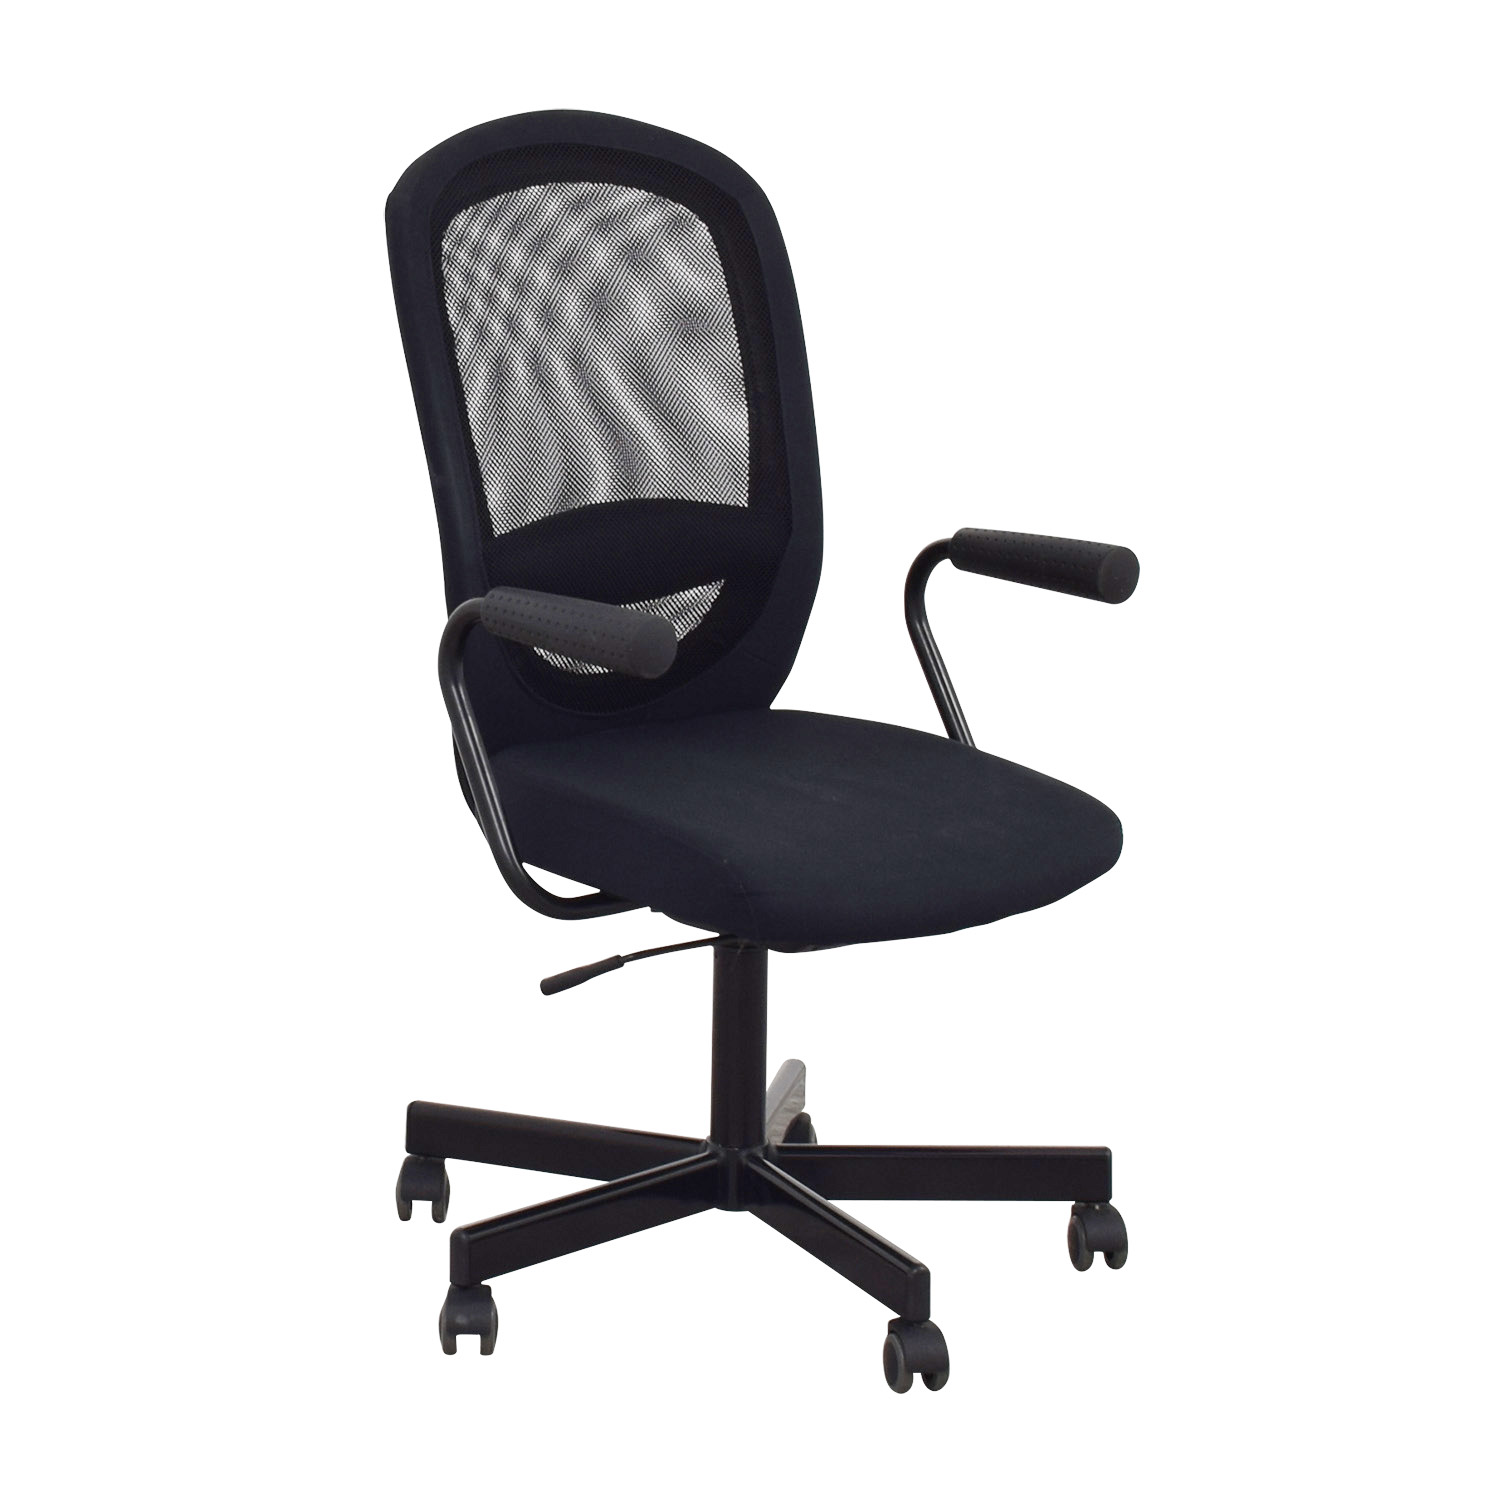 Flitan Nominell Flitan Nominell Swivel Chair with Armrests coupon